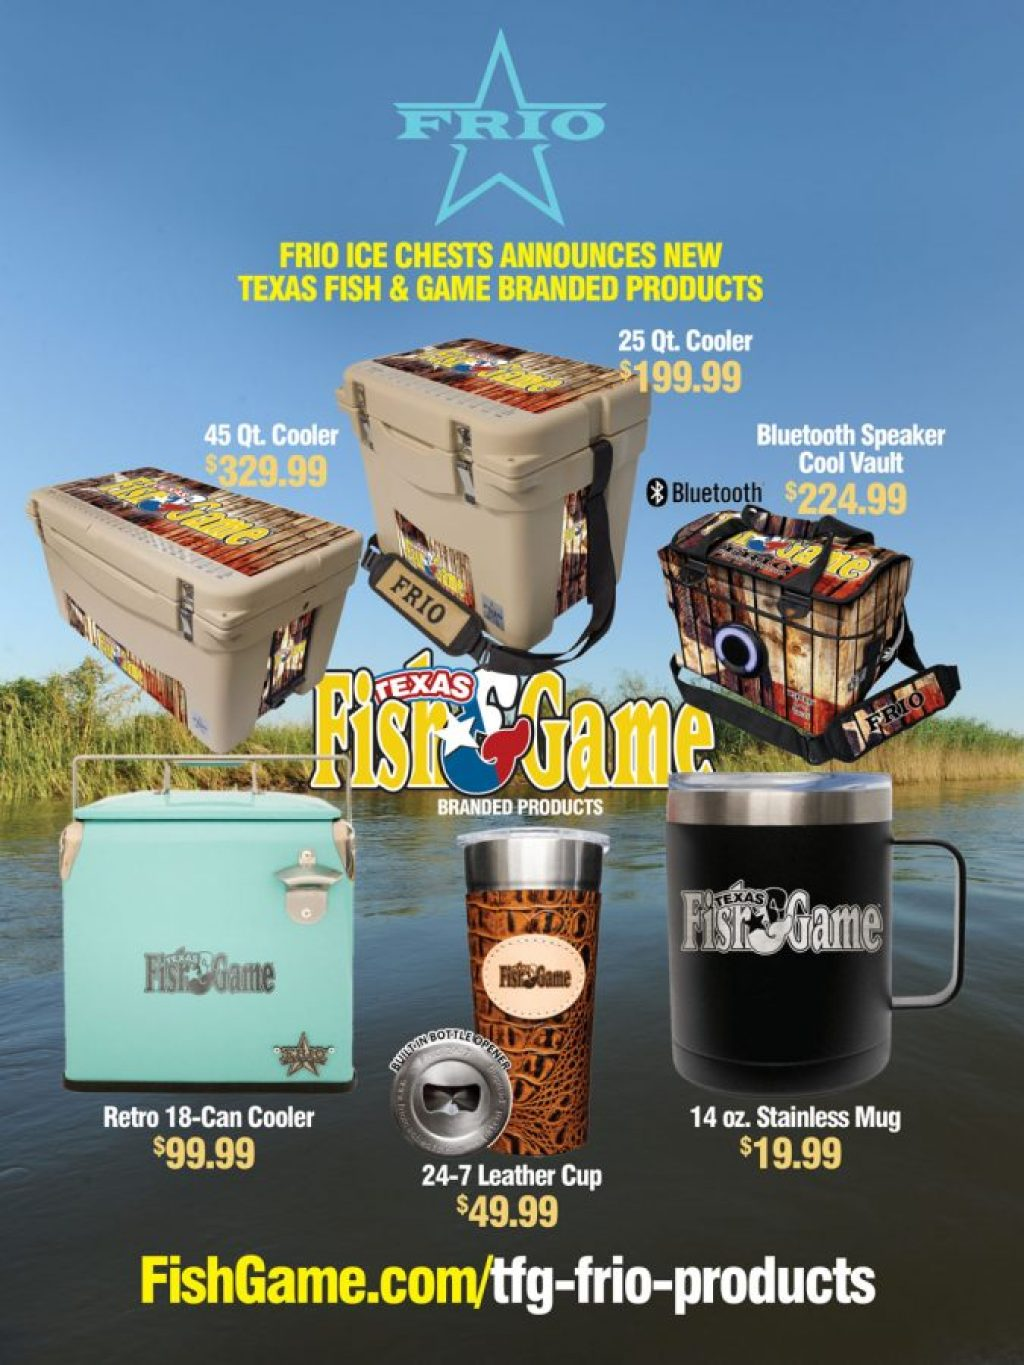 Texas Fish & Game Frio Products